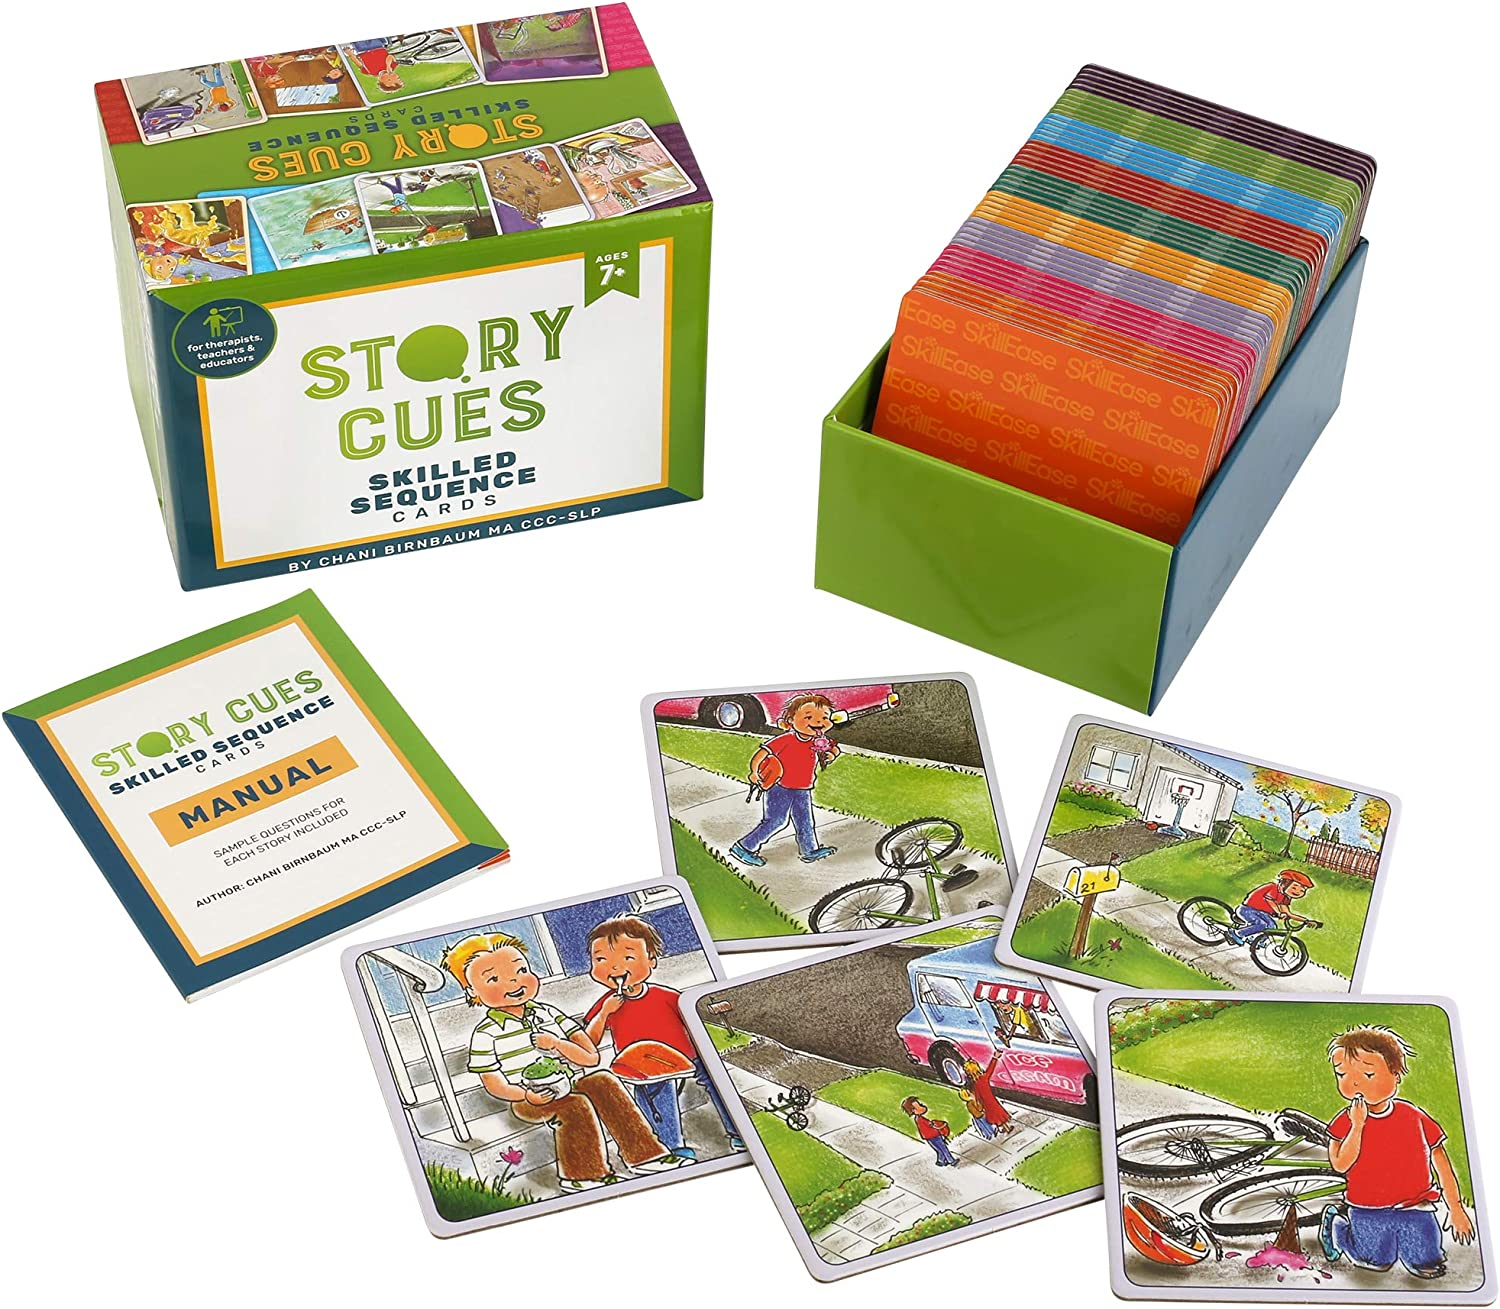 SkillEase Story Cues Skilled Sequence Cards a Therapy Game for Storytelling, Social Skills and Critical Thinking Skills